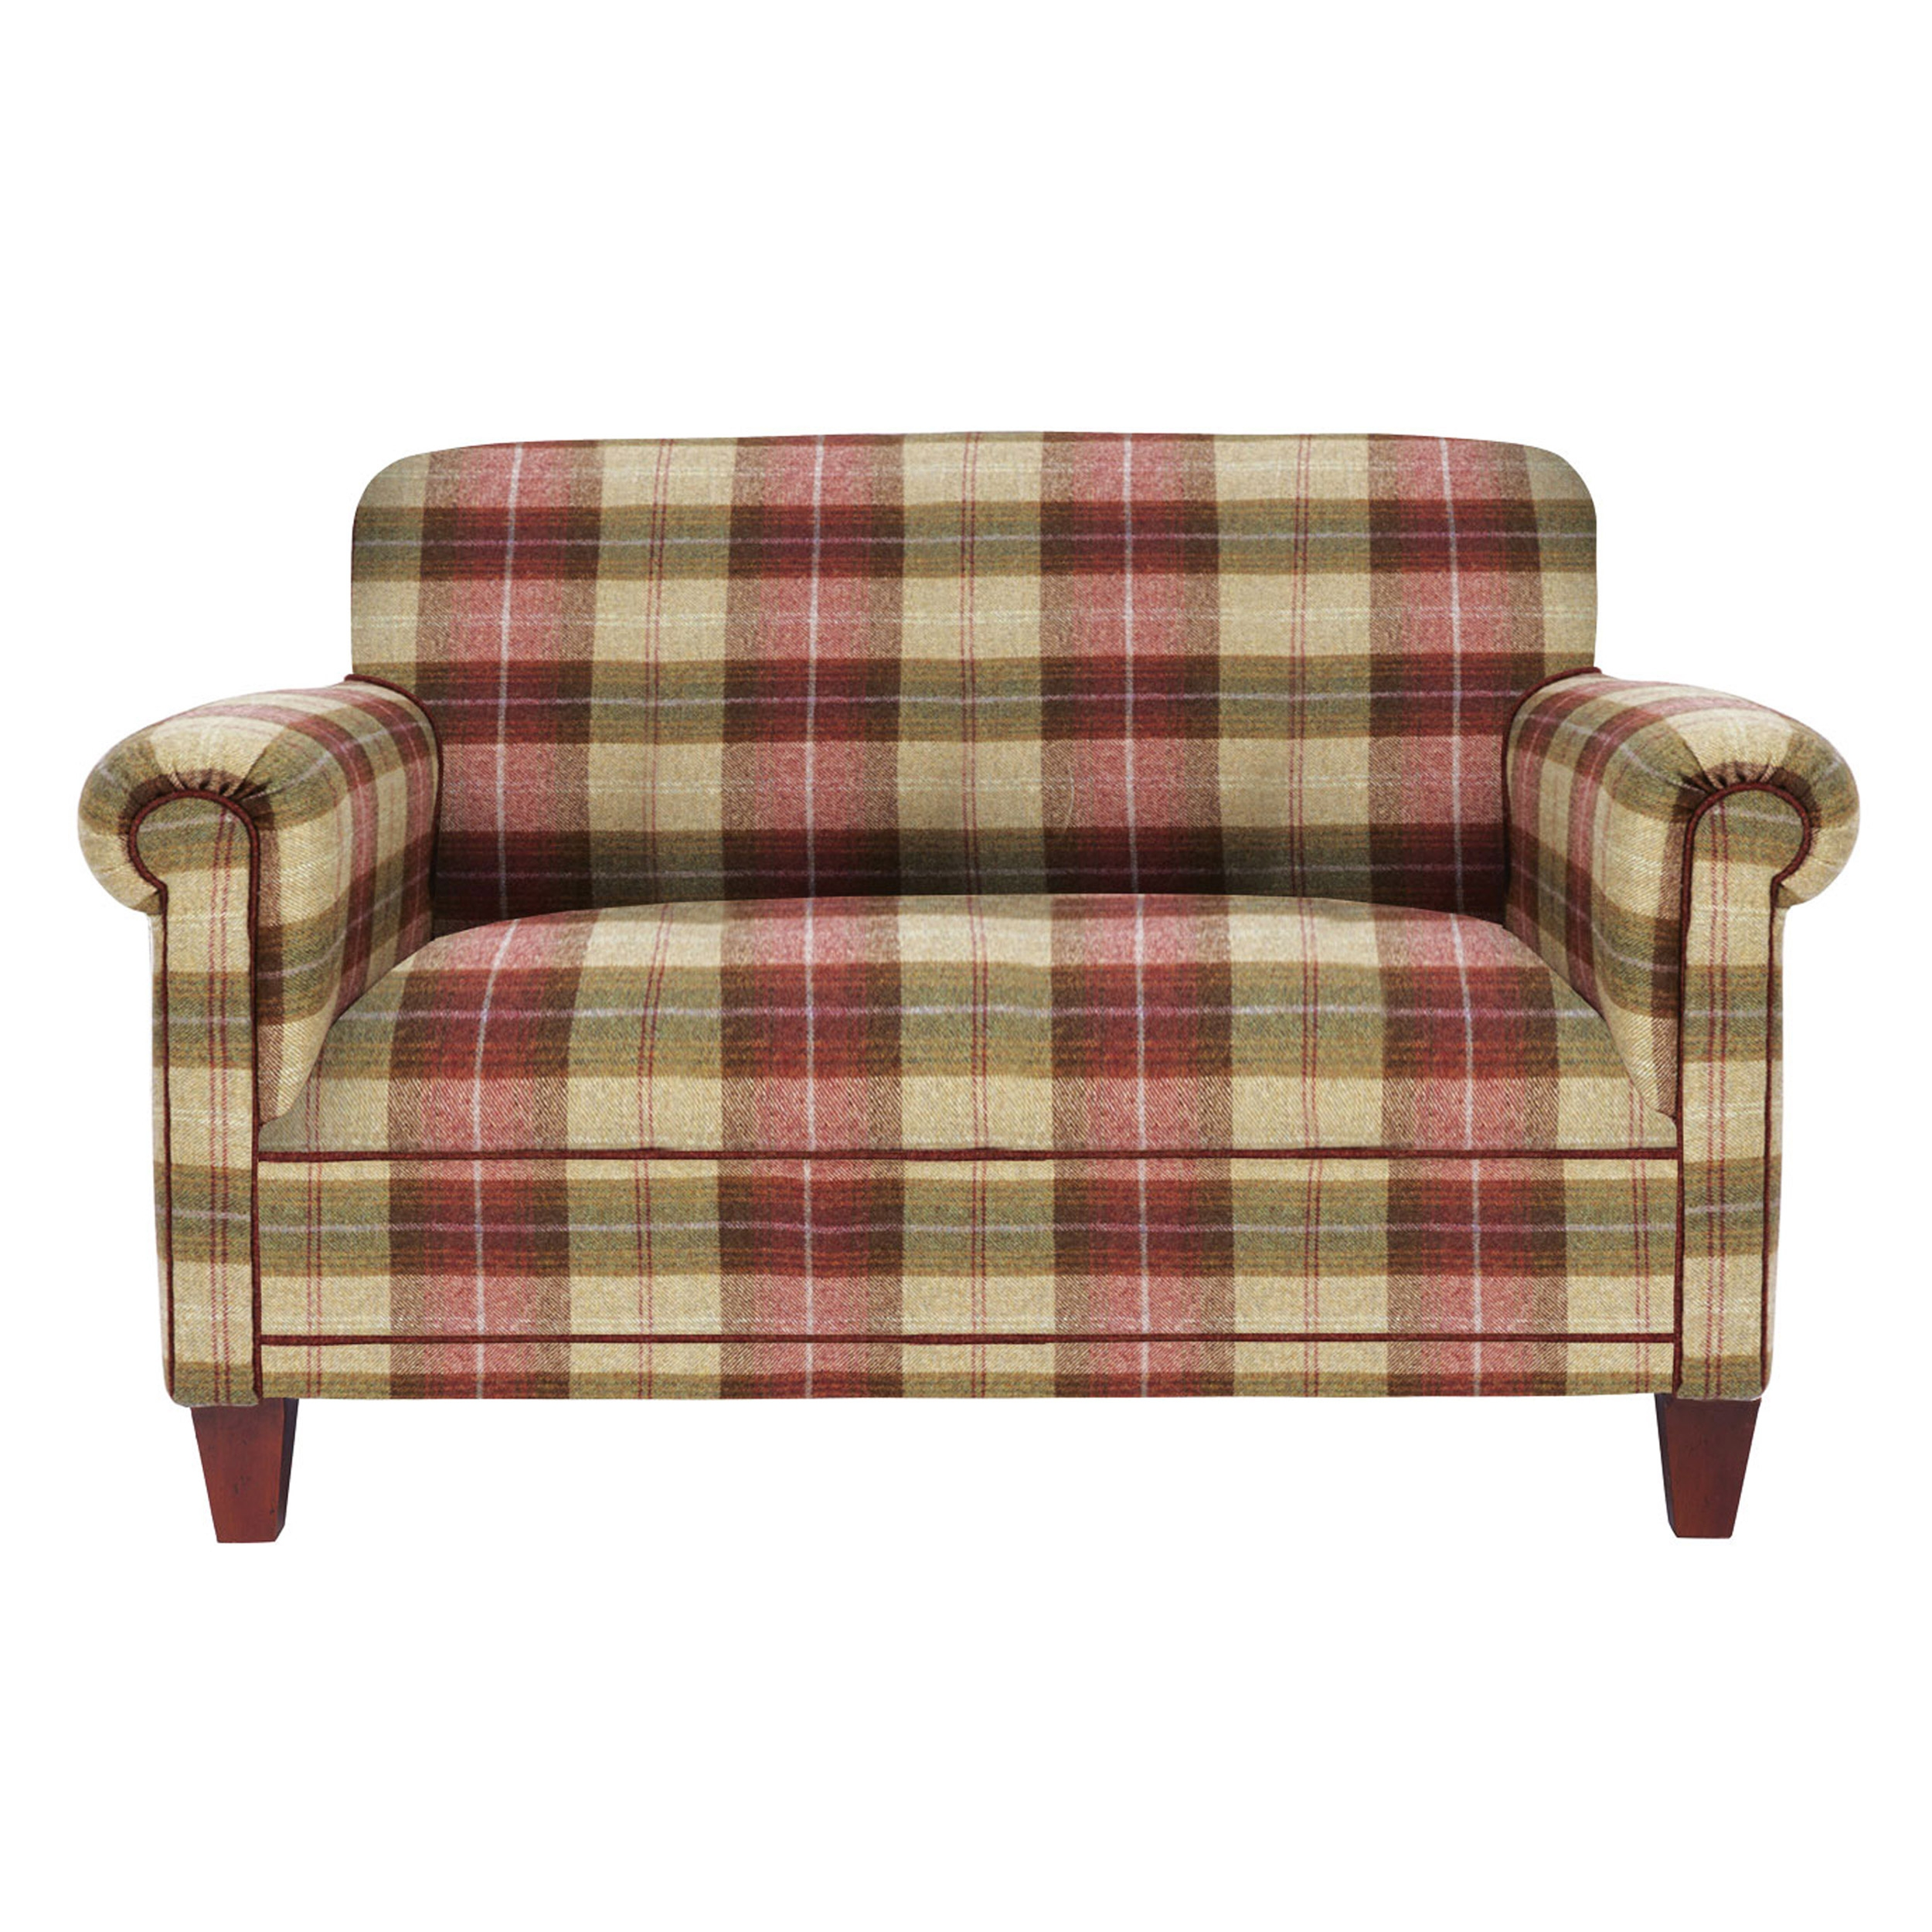 60 Small 2 Seater Sofa Buy Cheap Small 2 Seater Sofa Compare For Small 2 Seater Sofas (Photo 6 of 15)